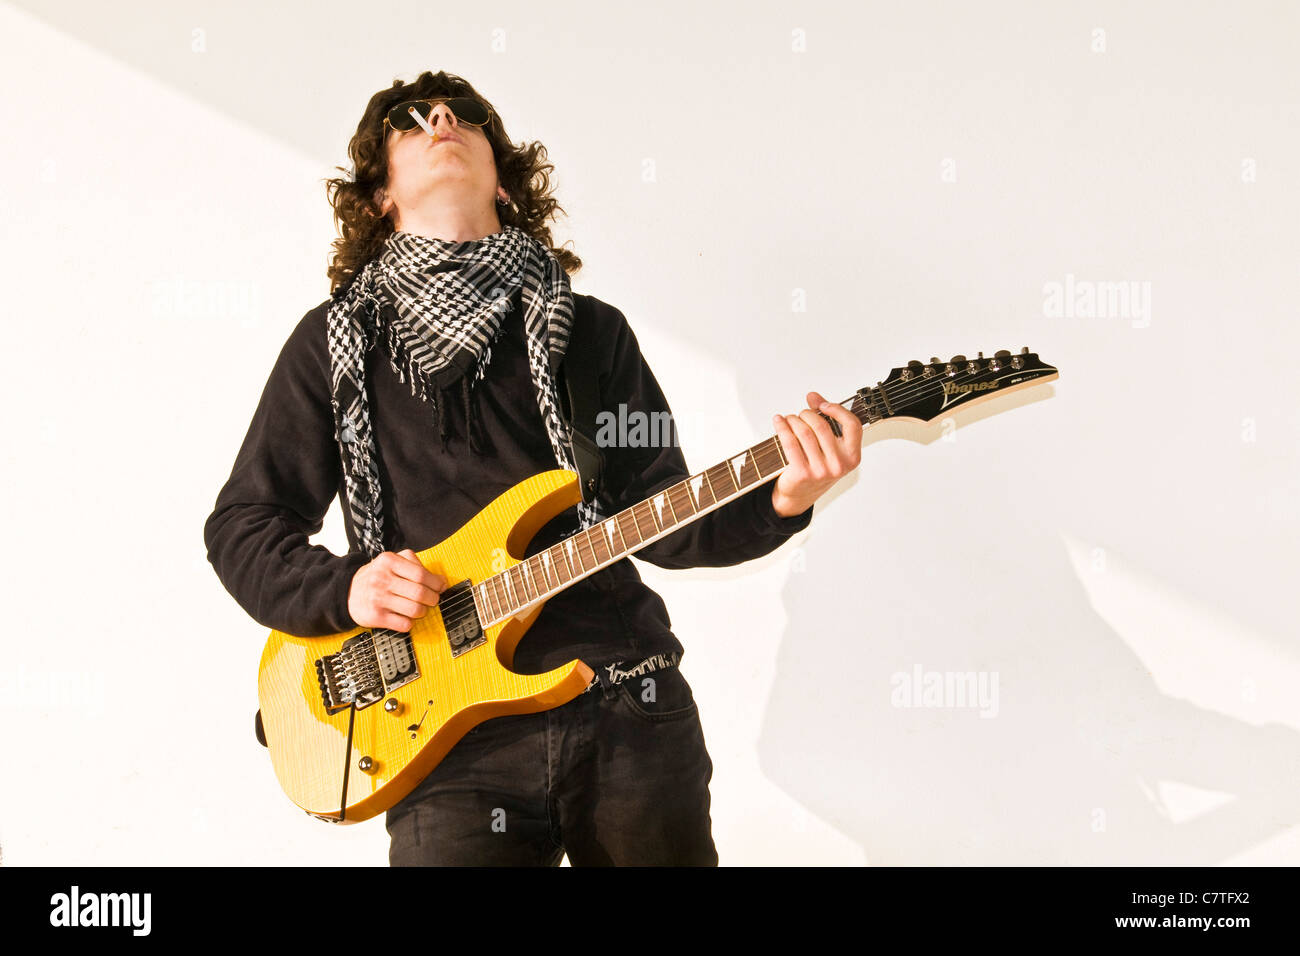 Fingerless gloves for guitarists - Teenage Boy Playing Bass Guitar Stock Image